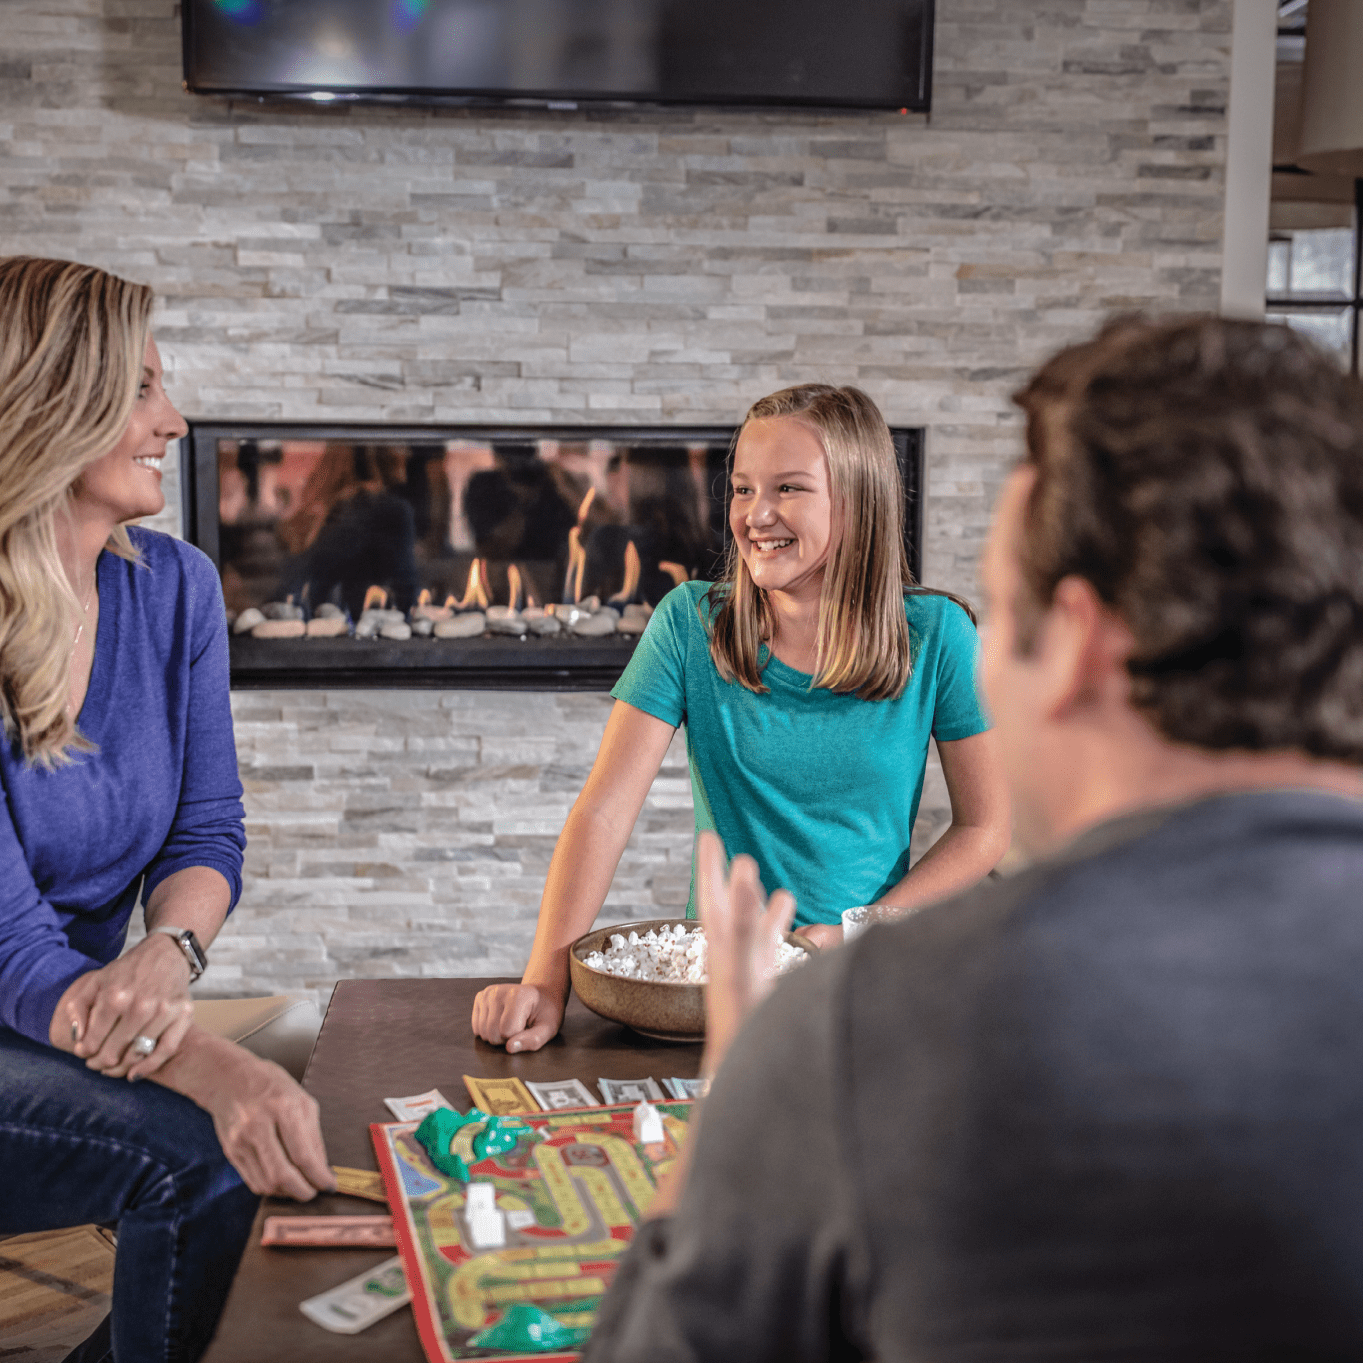 man, woman, and child playing board game near propane fireplace